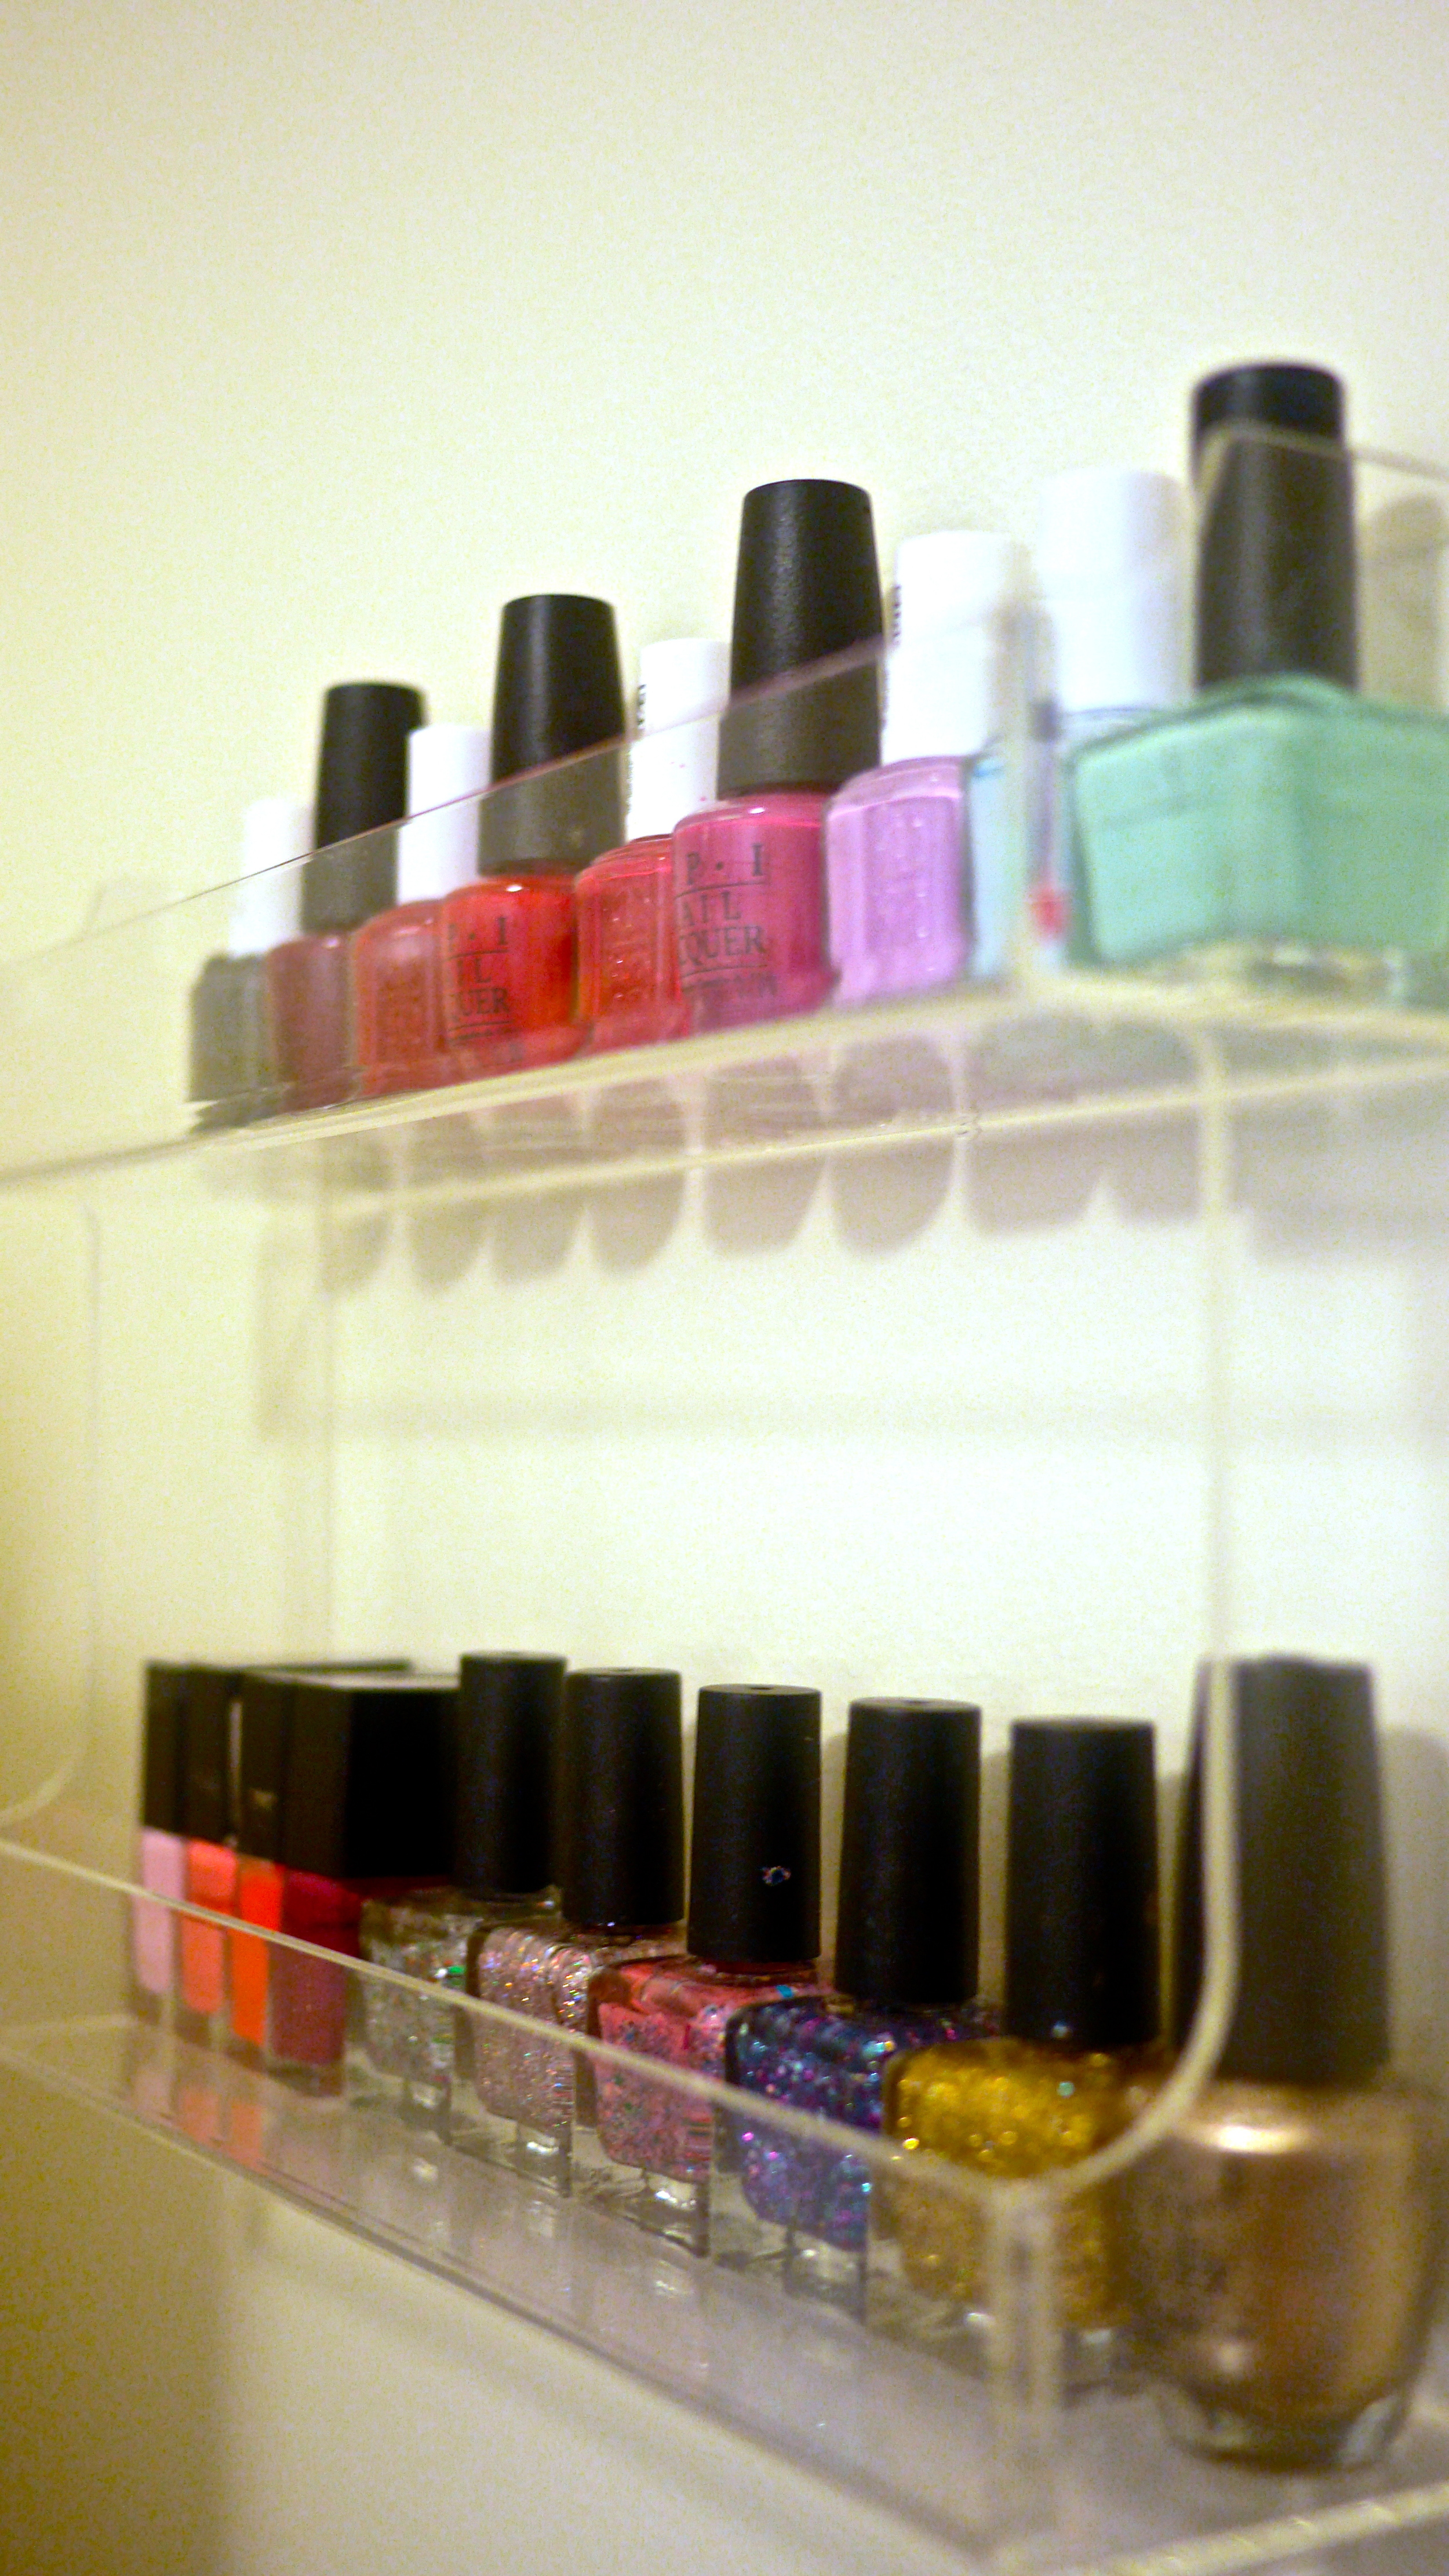 i got a basic spice rack from the container store to make a cute nail polish display case!